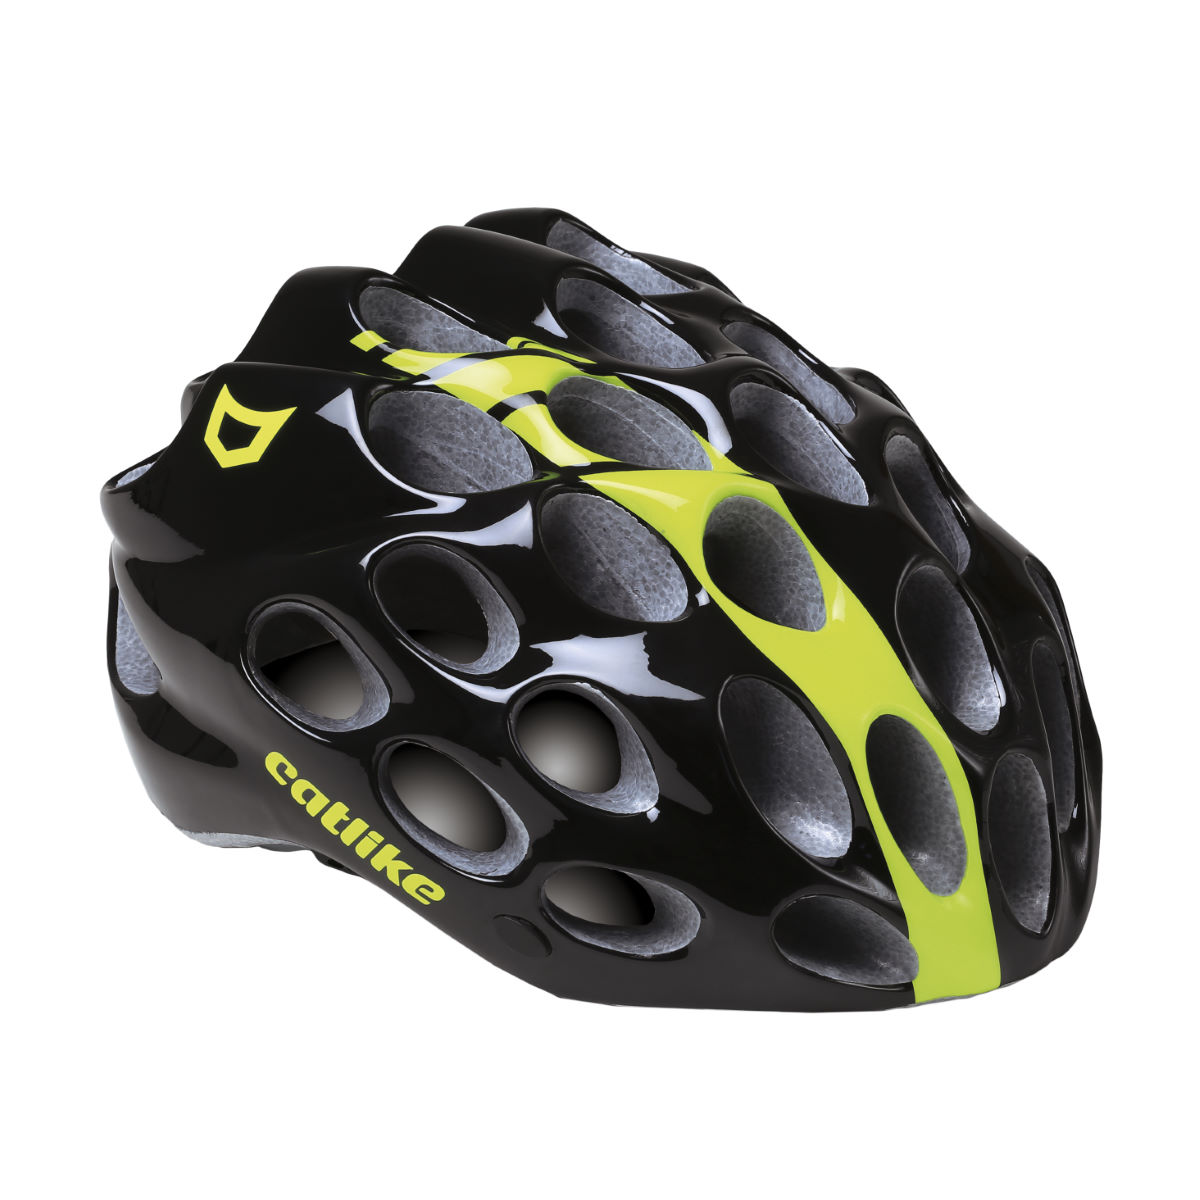 Casque Catlike Whisper - Medium Glossy Black/Yellow Casques de route